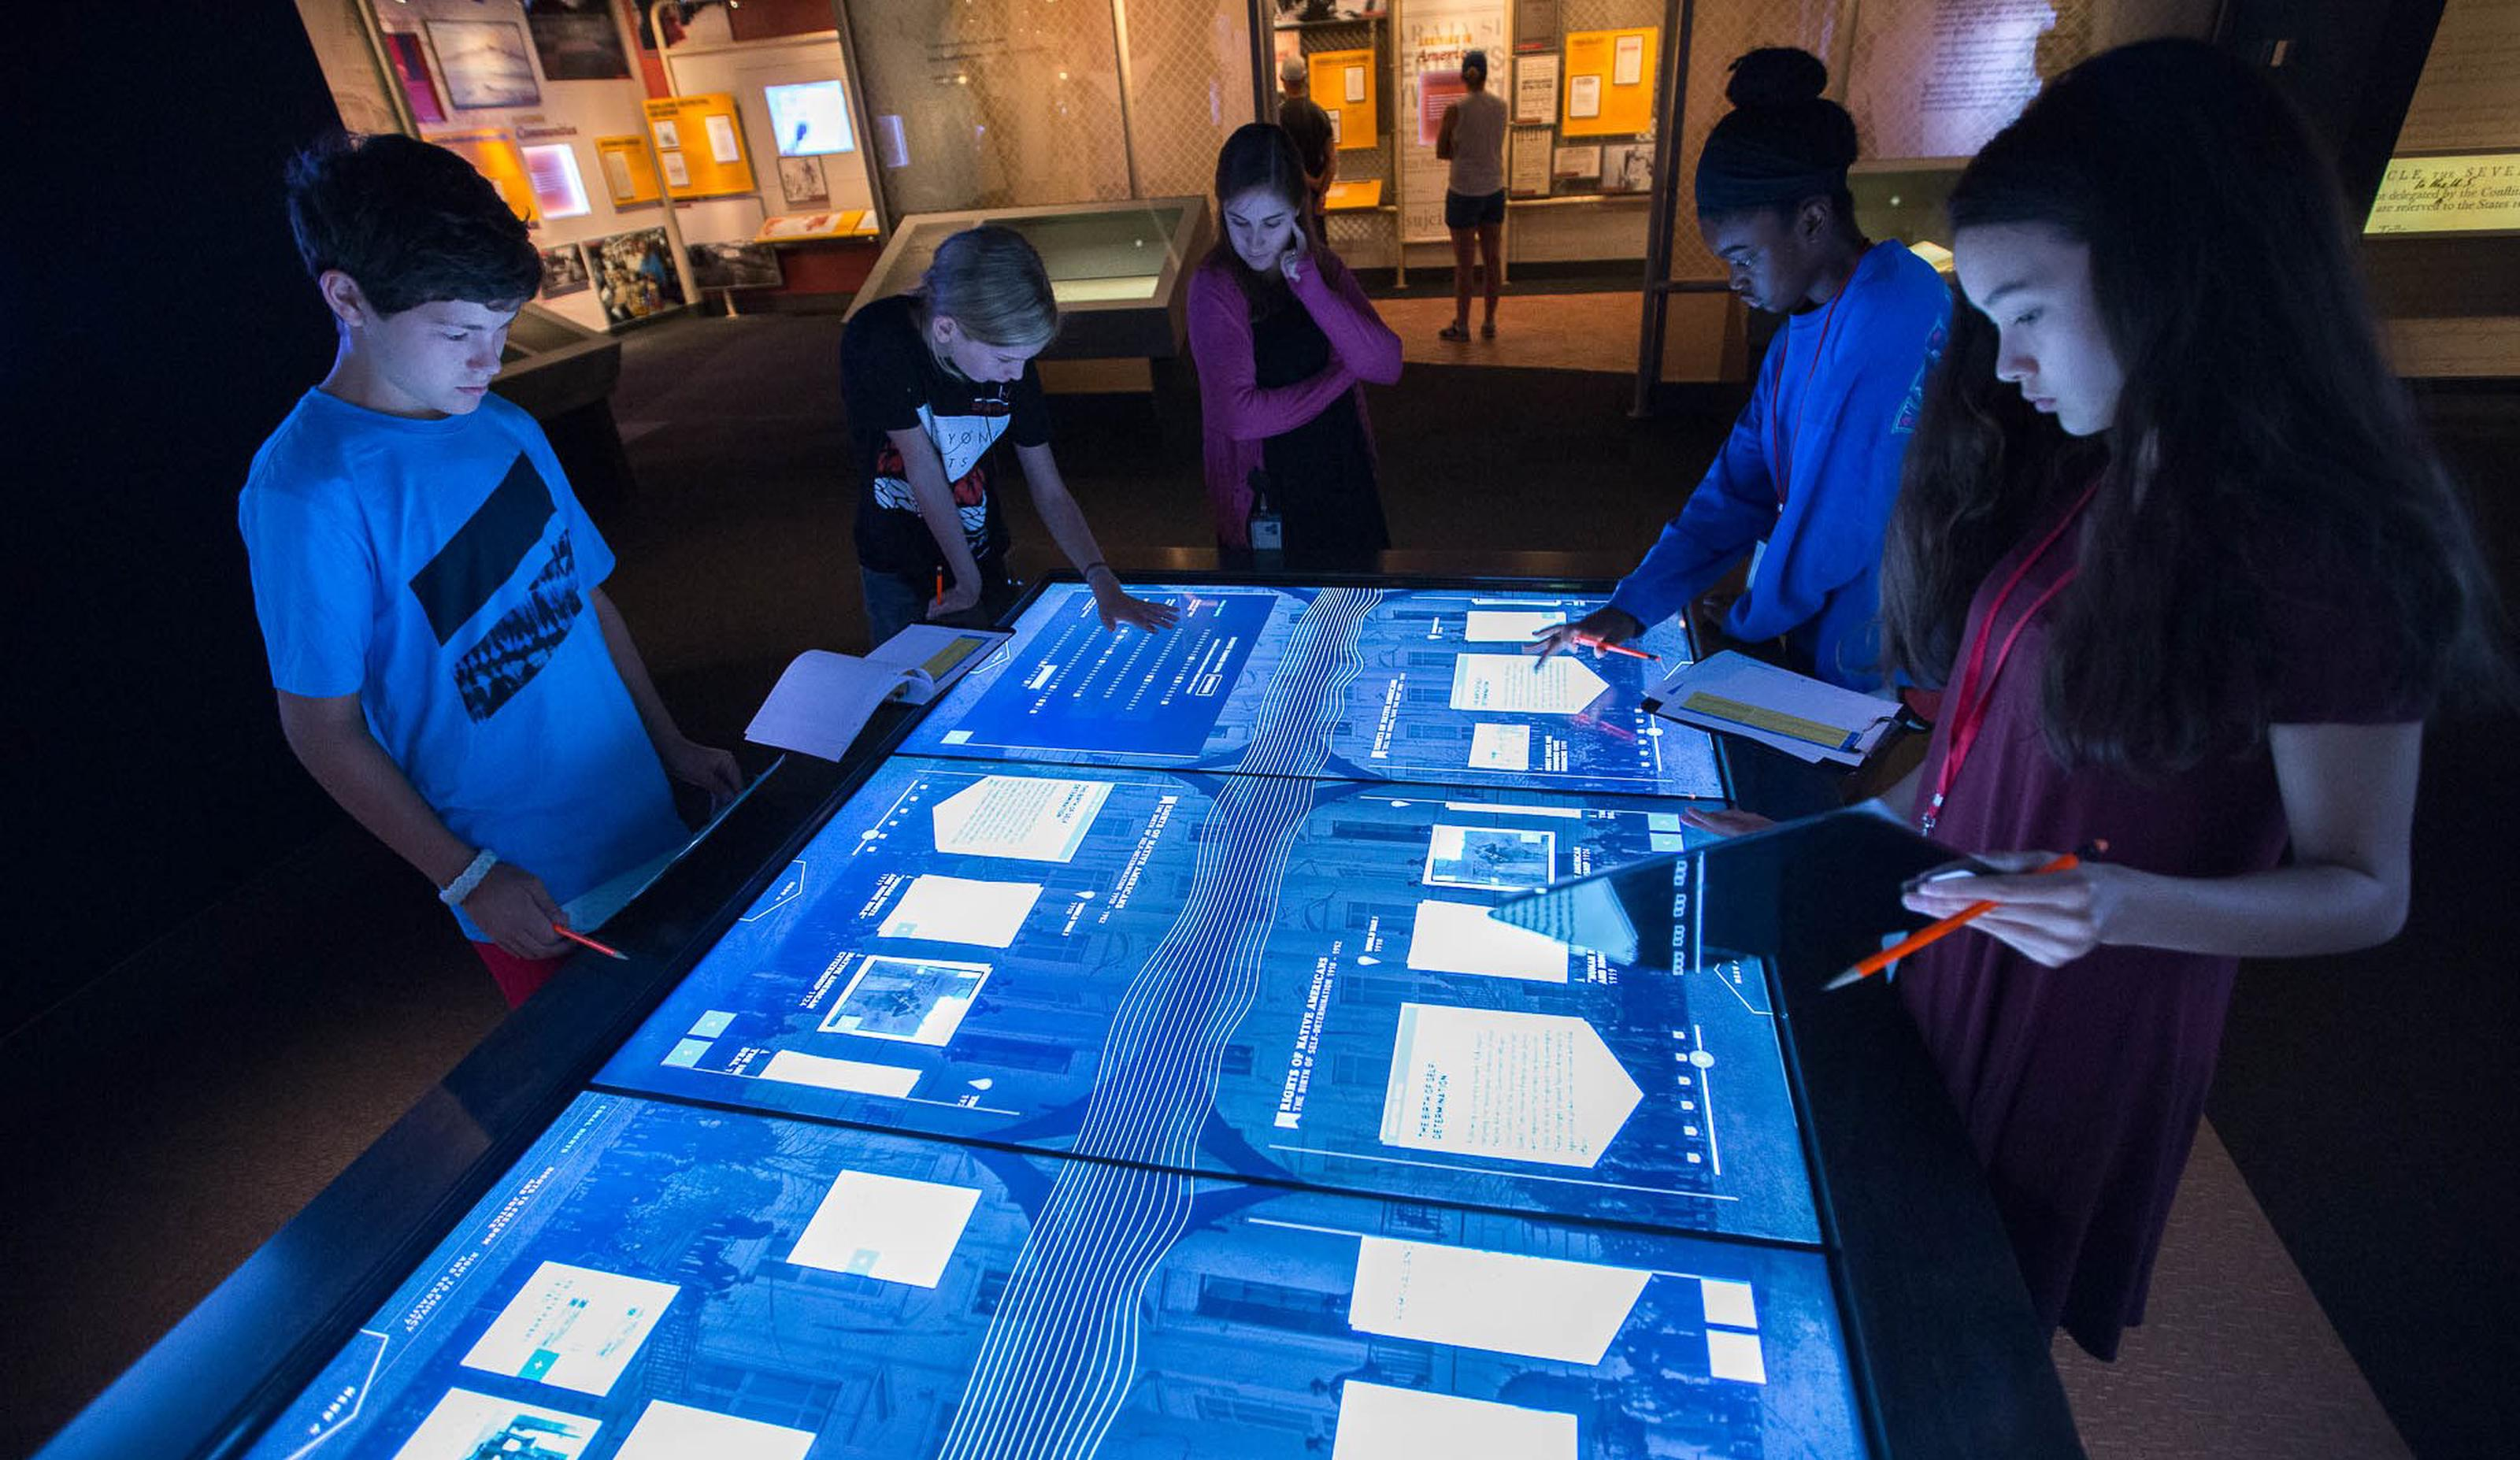 Visitors exploring records on an interactive table